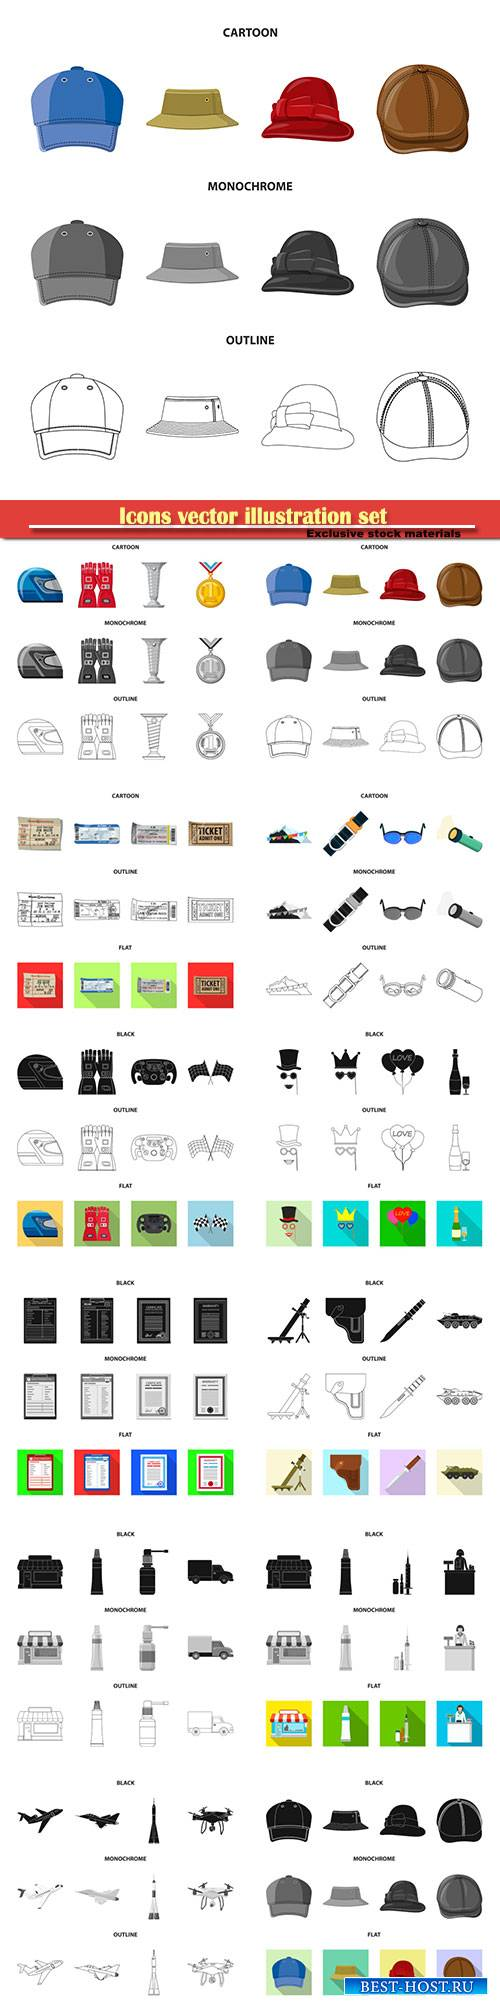 Icons vector illustration set # 5